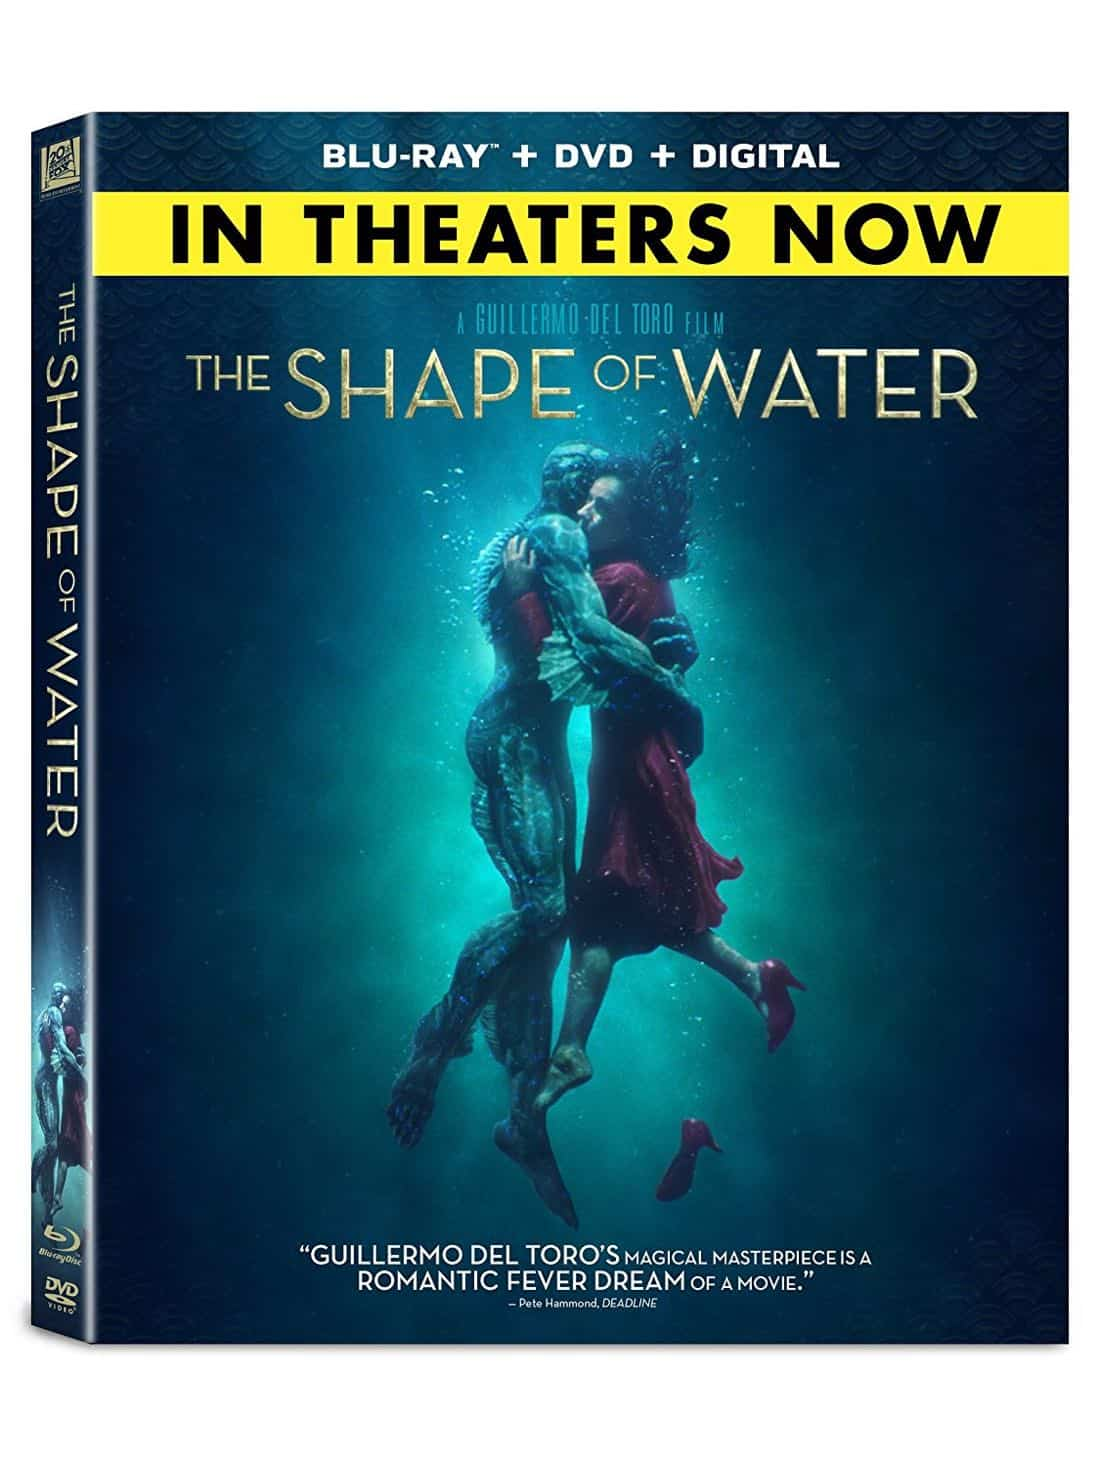 The-Shape-Of-Water-Bluray-DVD-Digital